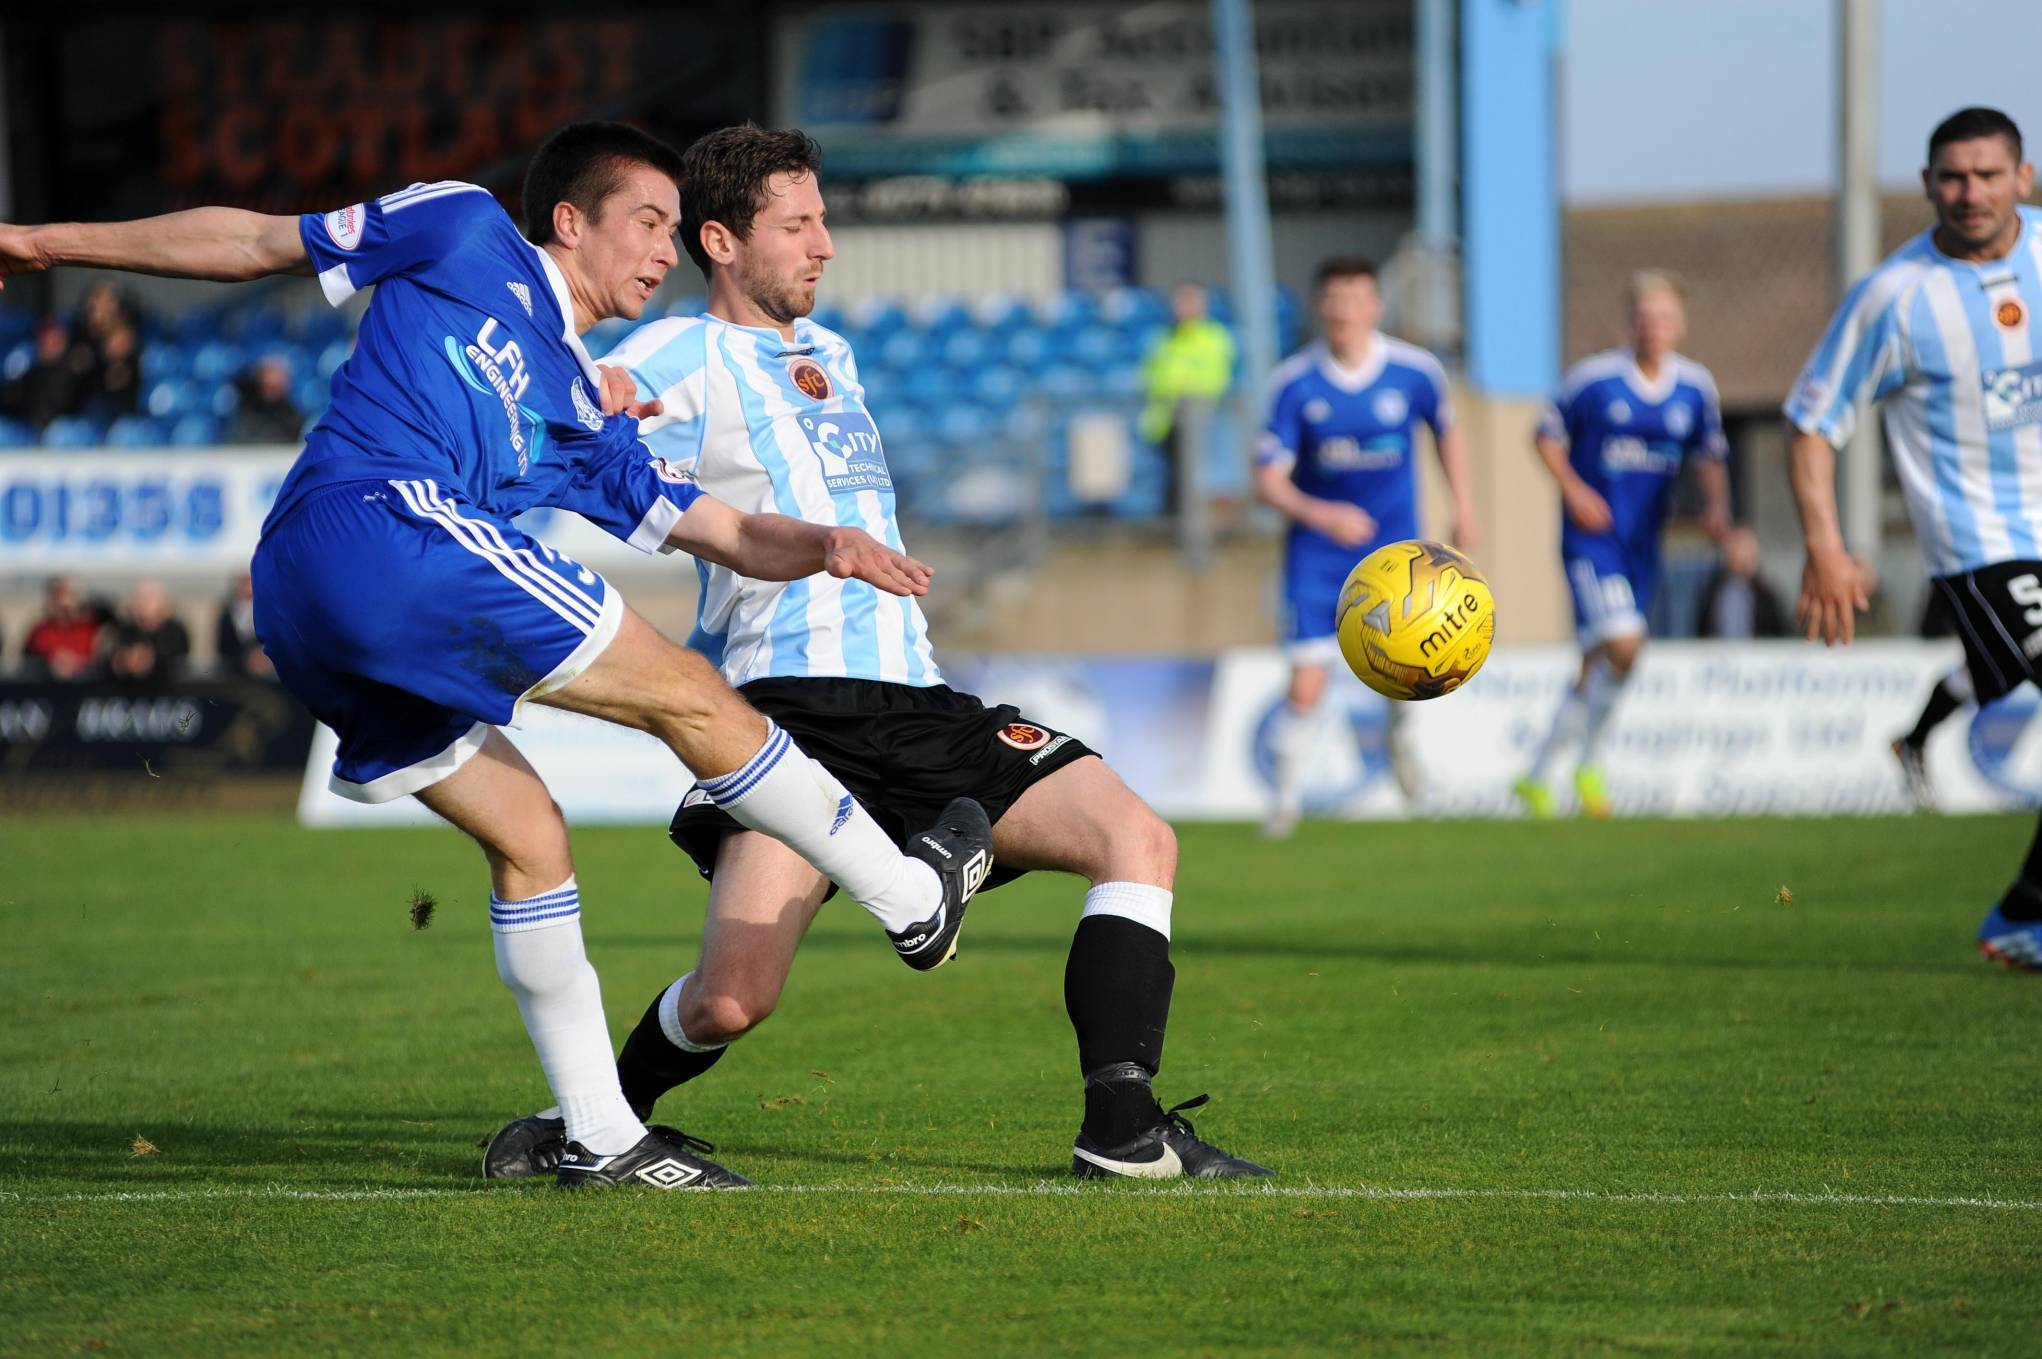 Peterhead's Cammy Kerr has a shot at goal. Picture by Duncan Brown